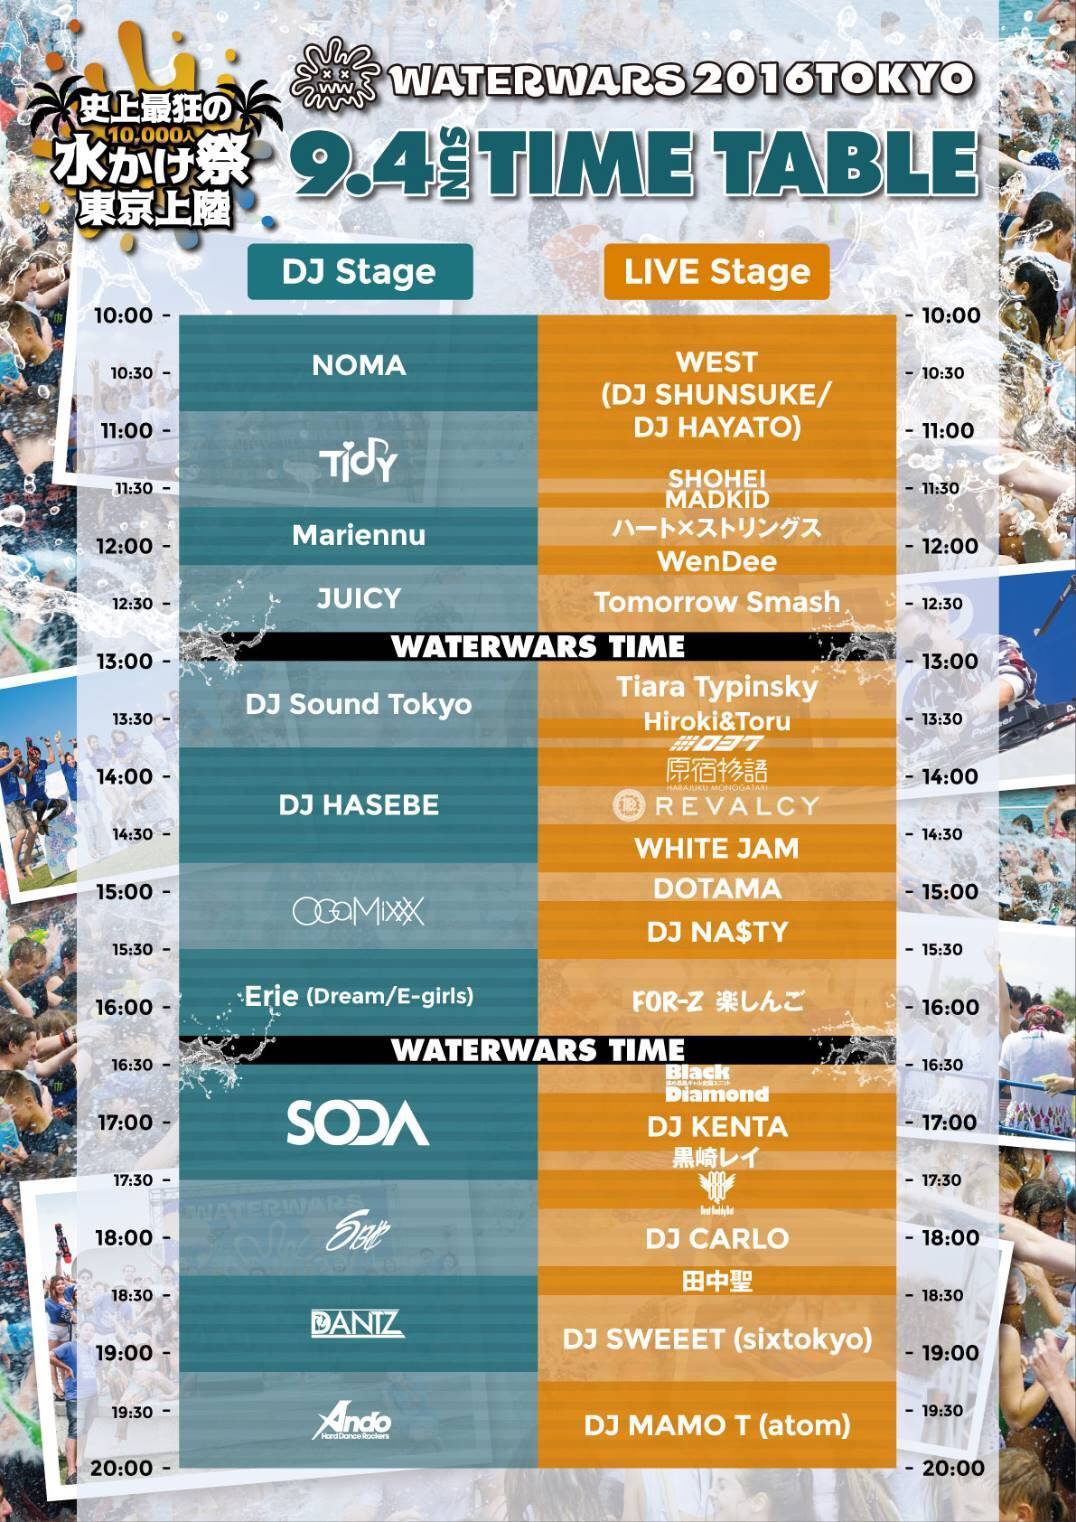 WATERWARS 2016 timetable